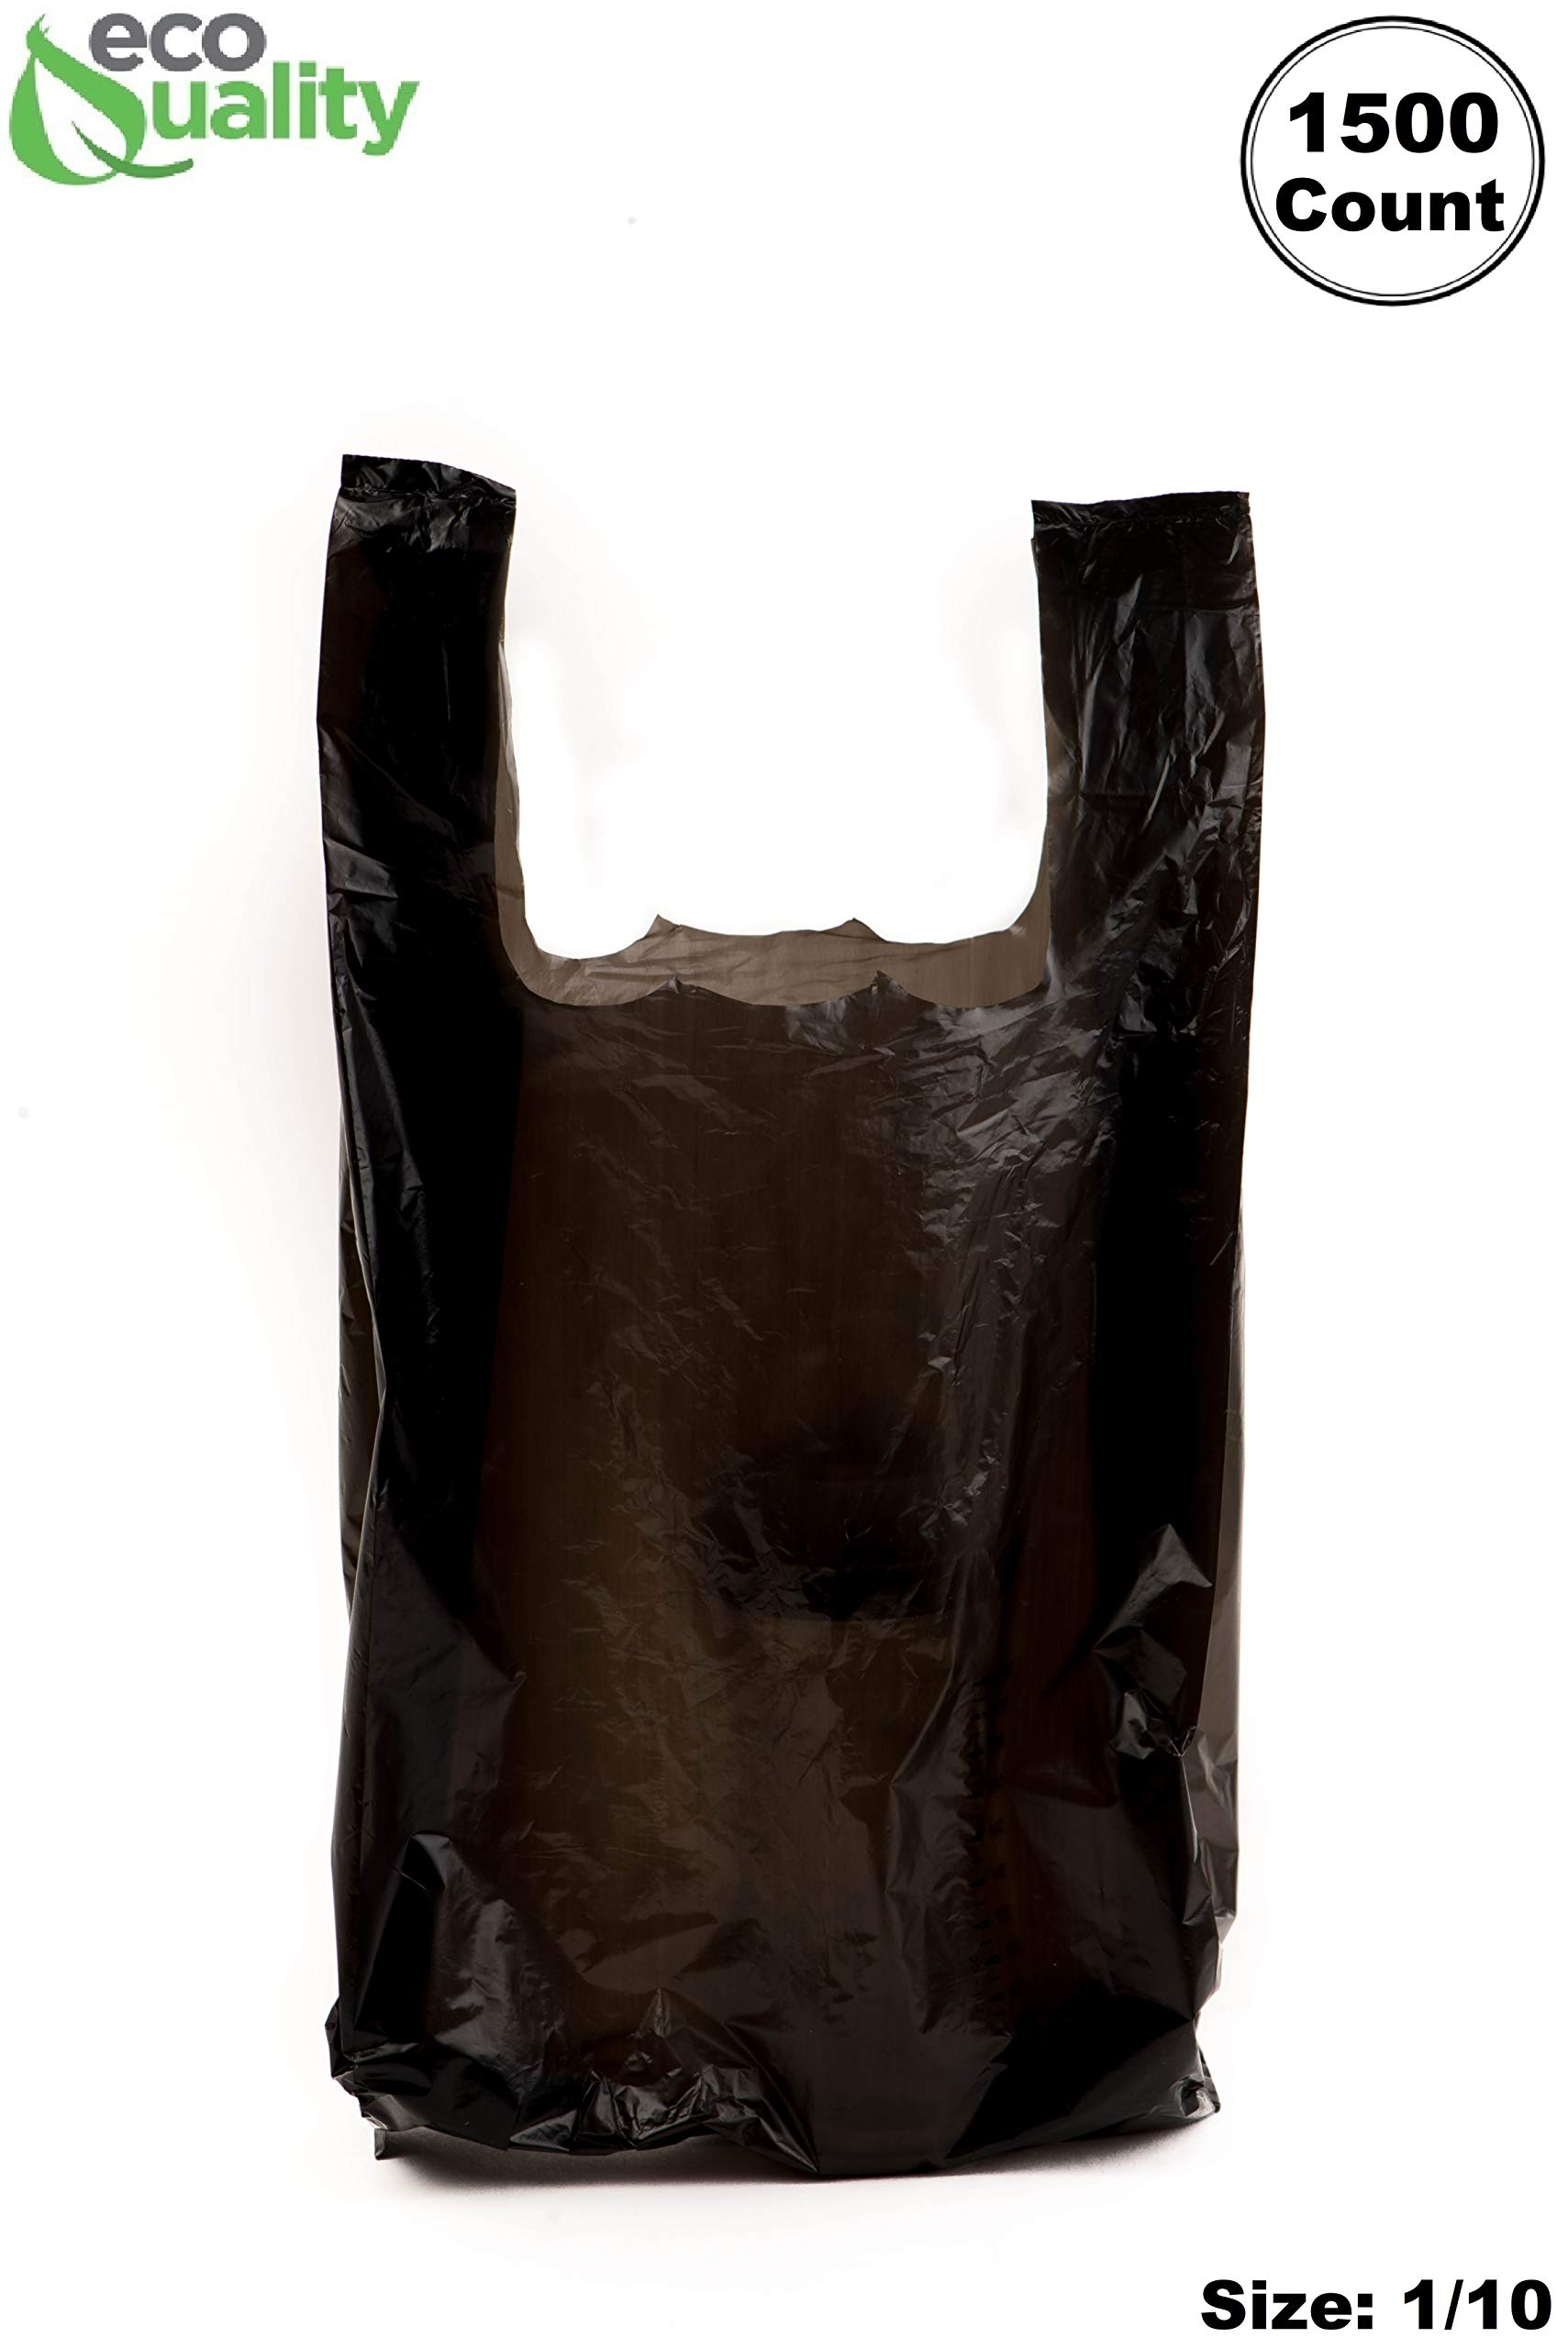 EcoQuality Plastic Black T-Shirt Bags 1500ct, 1/10 Shopping Bags, Grocery Bags, Poly Bags, Multi-Use, Small Size, Reusable Carry Out Bags (8x4x16) (13 Micron)